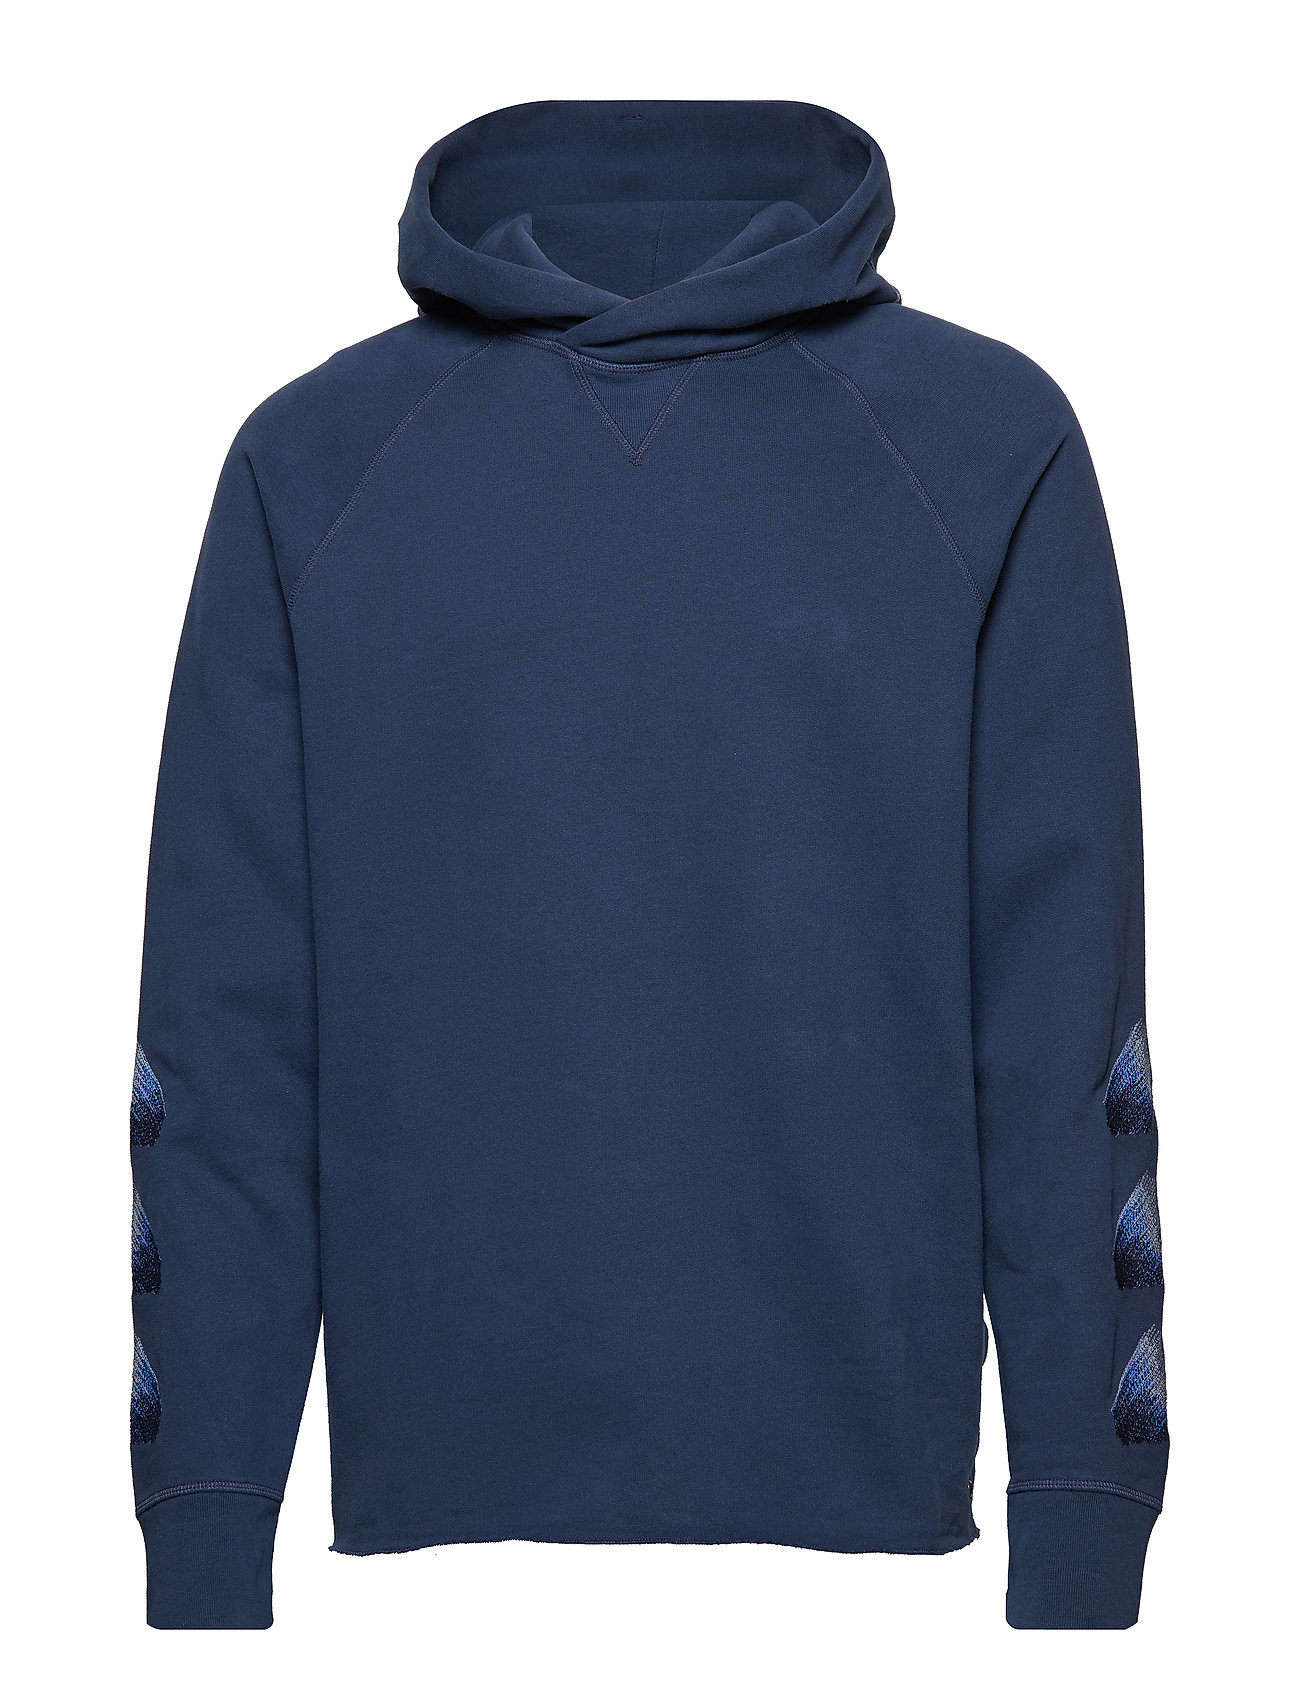 c6a6d0ed31 Lmc Unhemmed Hoodie Moonlight (Blues) (£130) - Levi s Made   Crafted ...